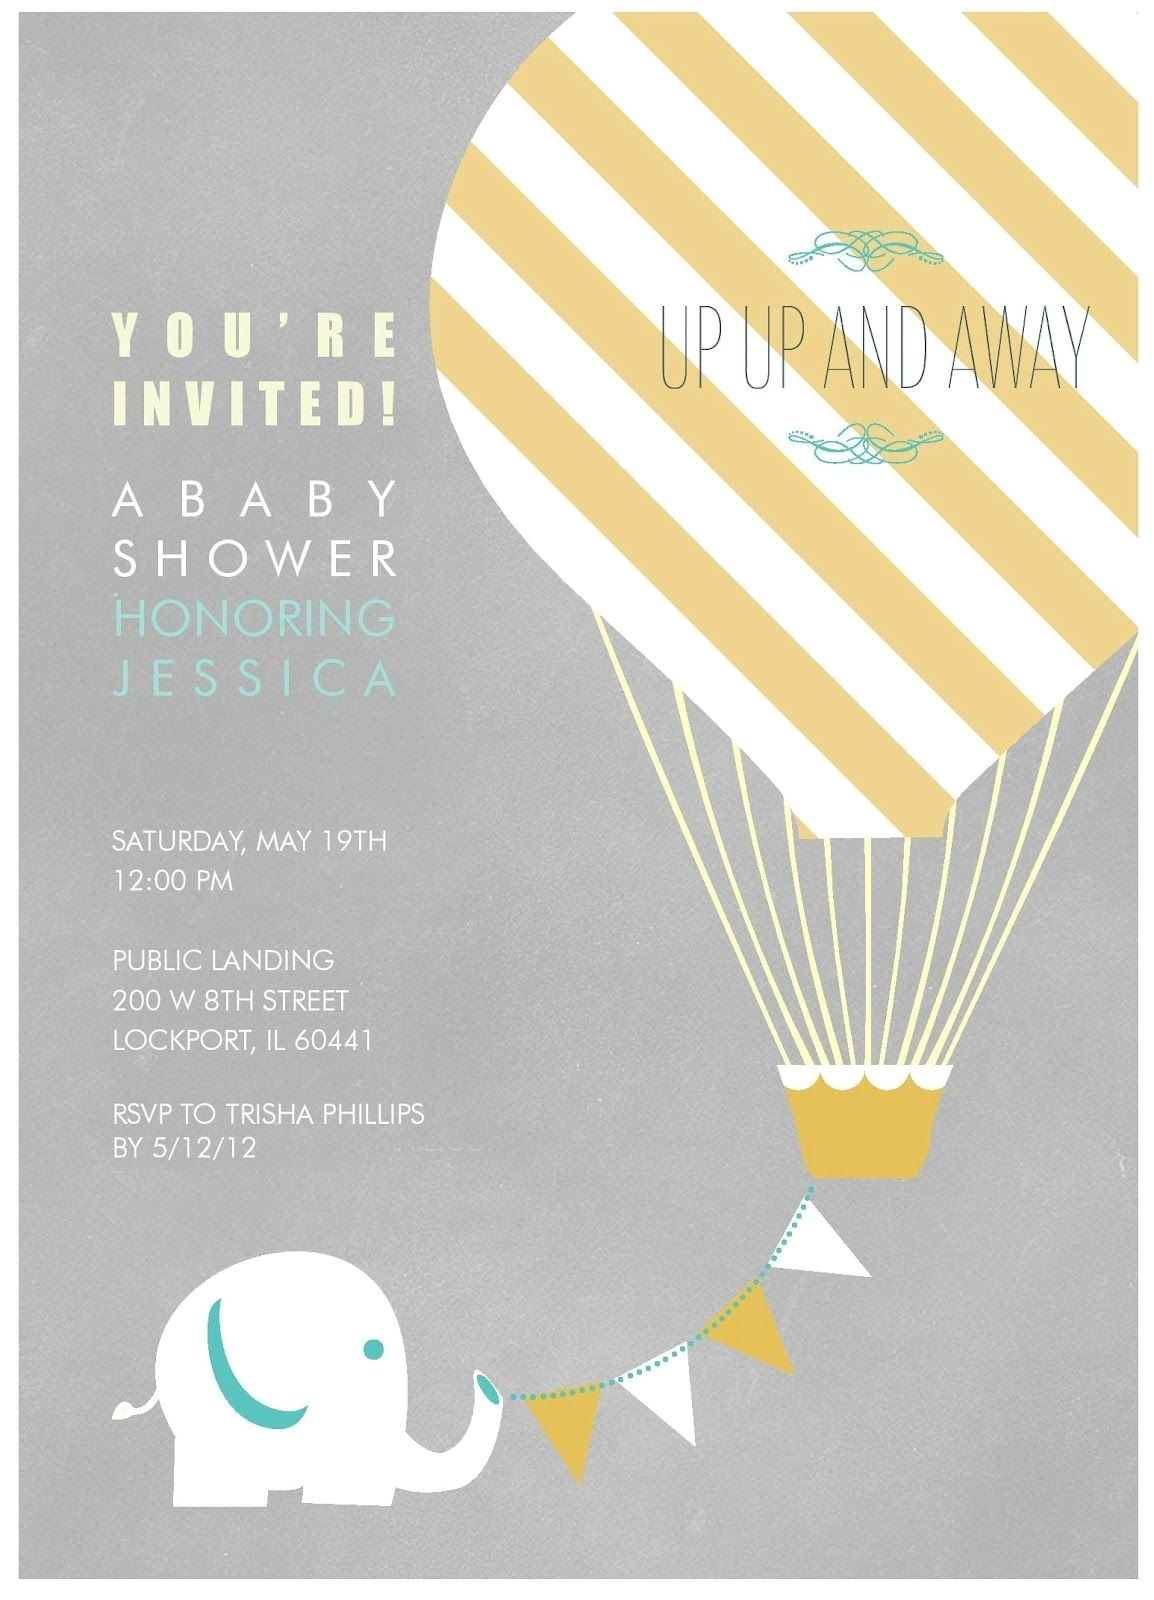 Hot Air Balloon themed Baby Shower Invitations Elephant with Hot Air Balloon Birthday Party Invitation